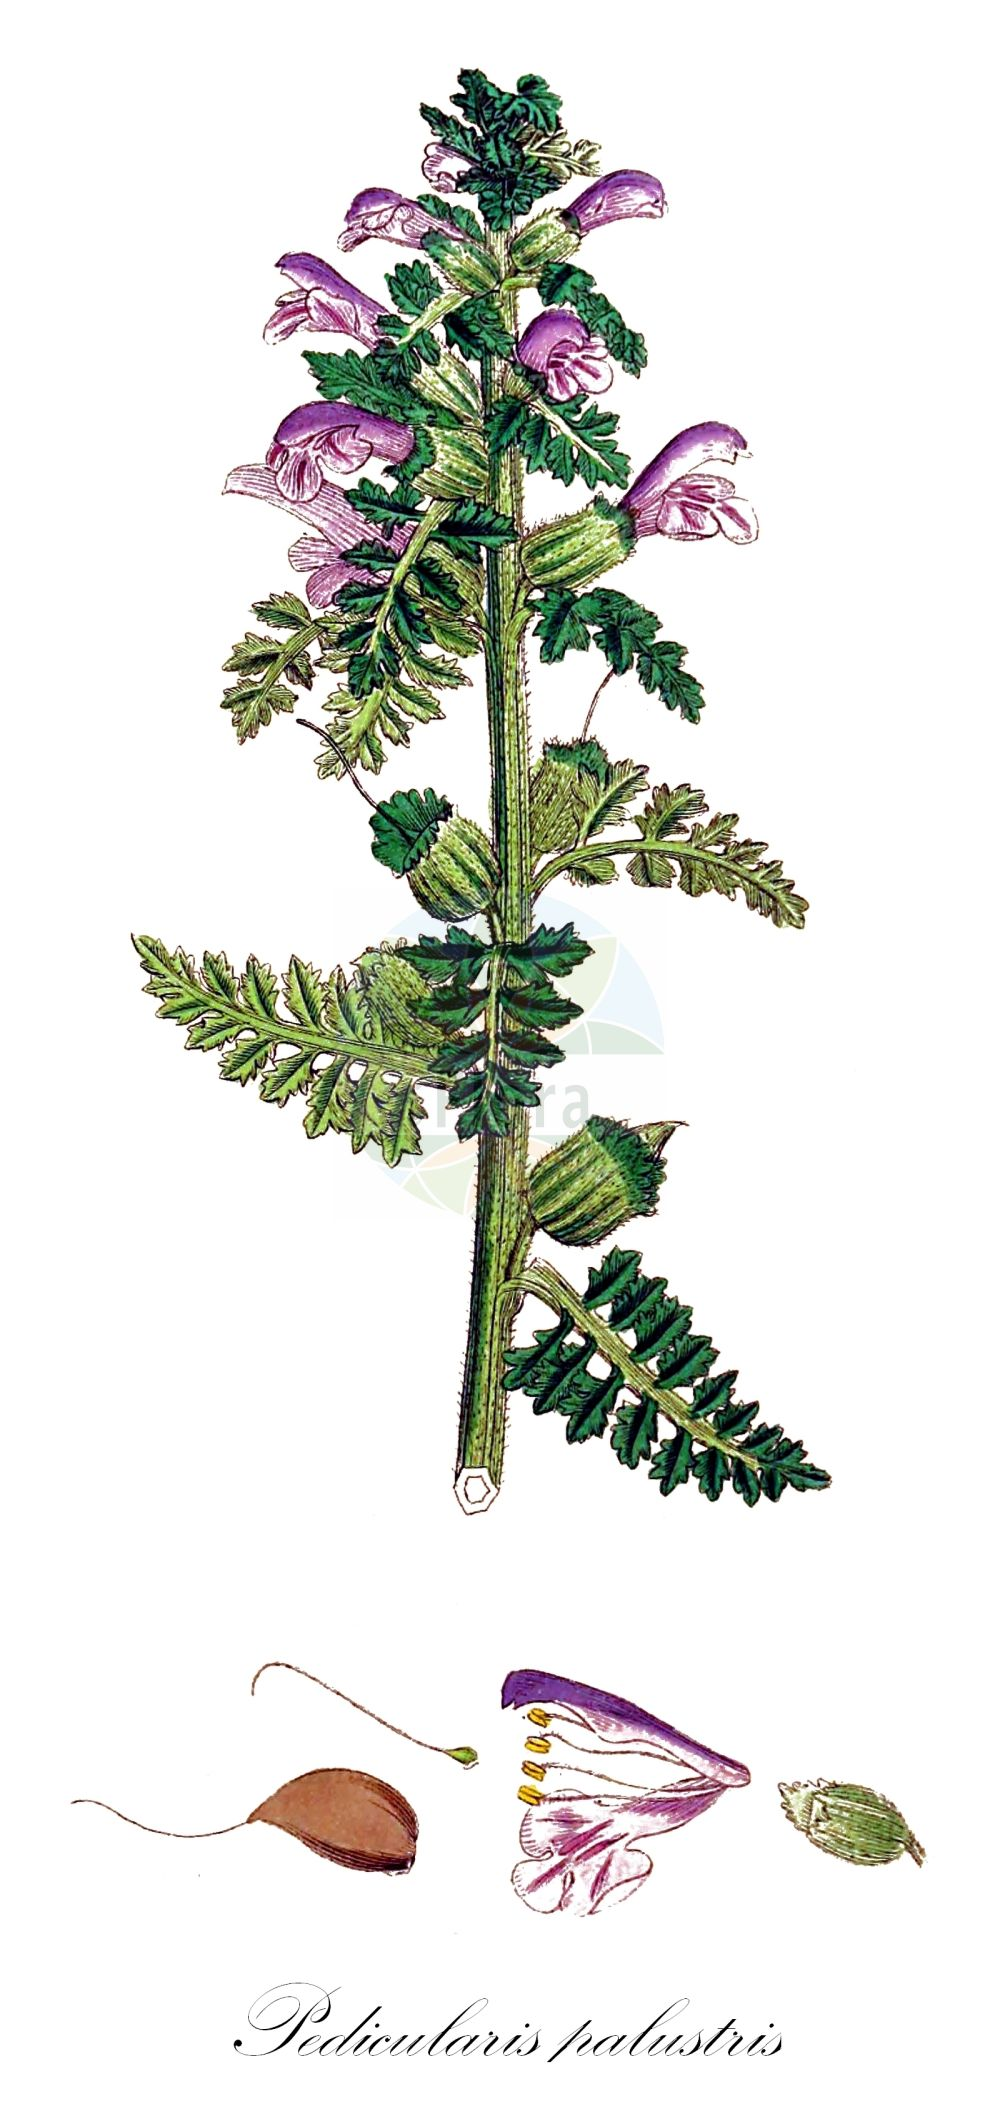 Historische Abbildung von Pedicularis palustris (Sumpf-Laeusekraut - Marsh Lousewort). Das Bild zeigt Blatt, Bluete, Frucht und Same. ---- Historical Drawing of Pedicularis palustris (Sumpf-Laeusekraut - Marsh Lousewort).The image is showing leaf, flower, fruit and seed.(Pedicularis palustris,Sumpf-Laeusekraut,Marsh Lousewort,subsp. serotina,Gewoehnliches ,European Purple Lousewort,Red Rattle,Pedicularis,Laeusekraut,Lousewort,Orobanchaceae,Sommerwurzgewaechse,Broomrape family,Blatt,Bluete,Frucht,Same,leaf,flower,fruit,seed,Sowerby (1790-1813))